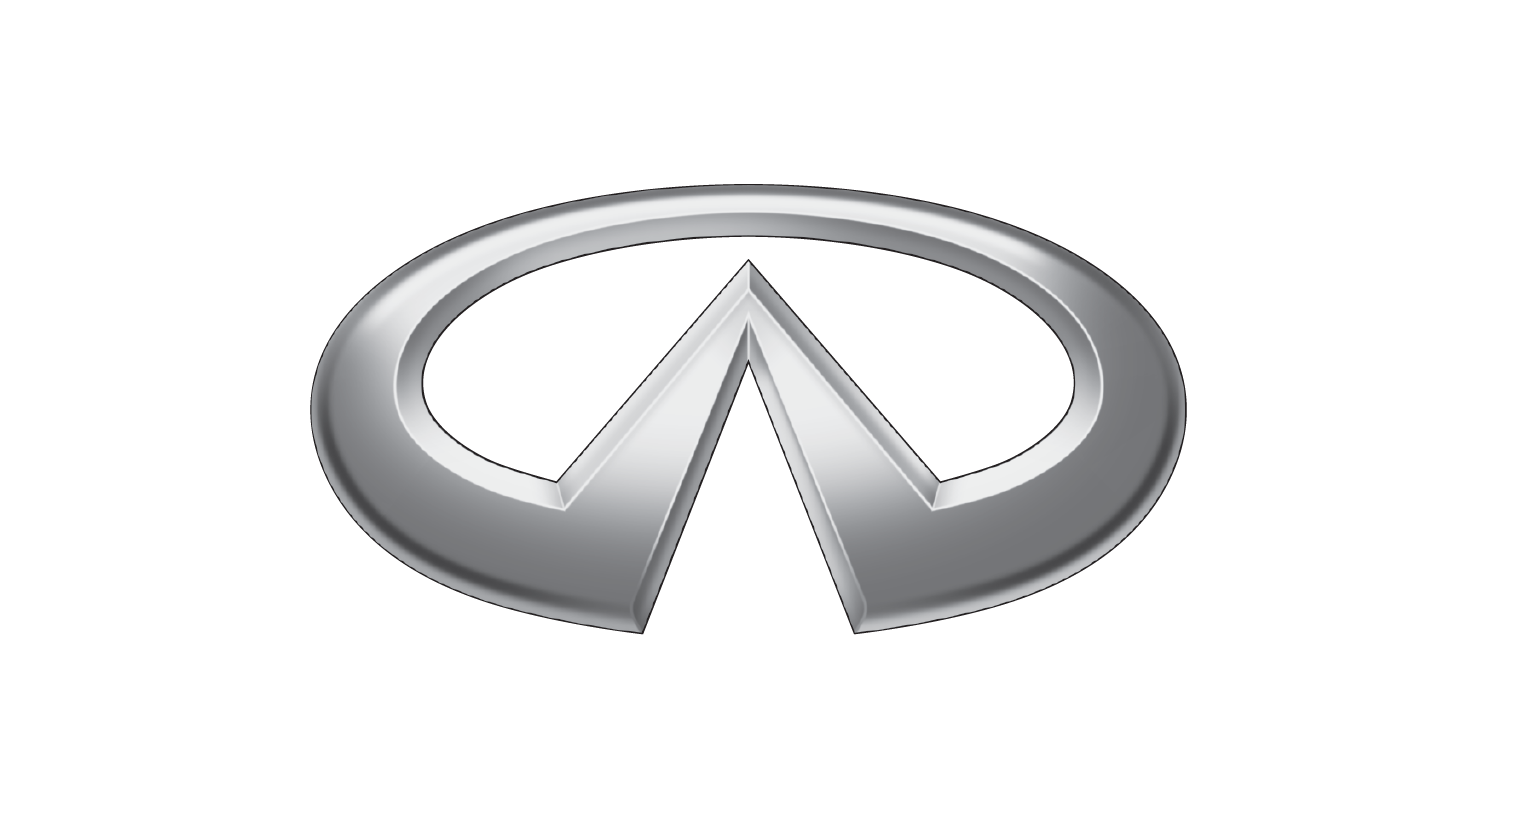 Infiniti Logo, Infiniti Car Symbol Meaning and History ...